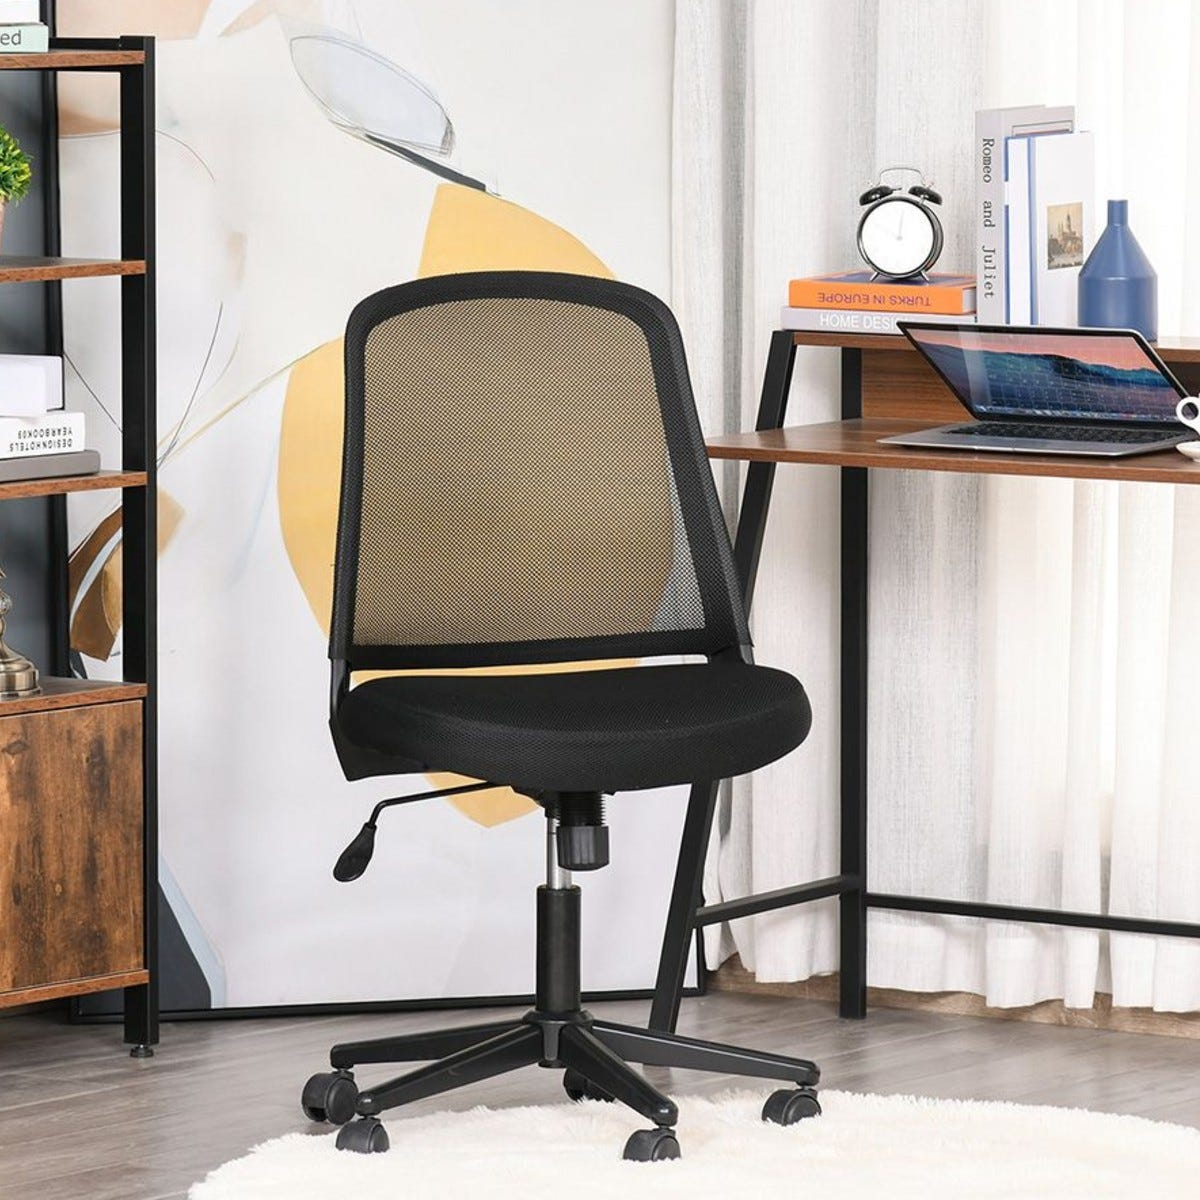 Mid Back Office Chair Mesh Fabric Armless With Wheels Black